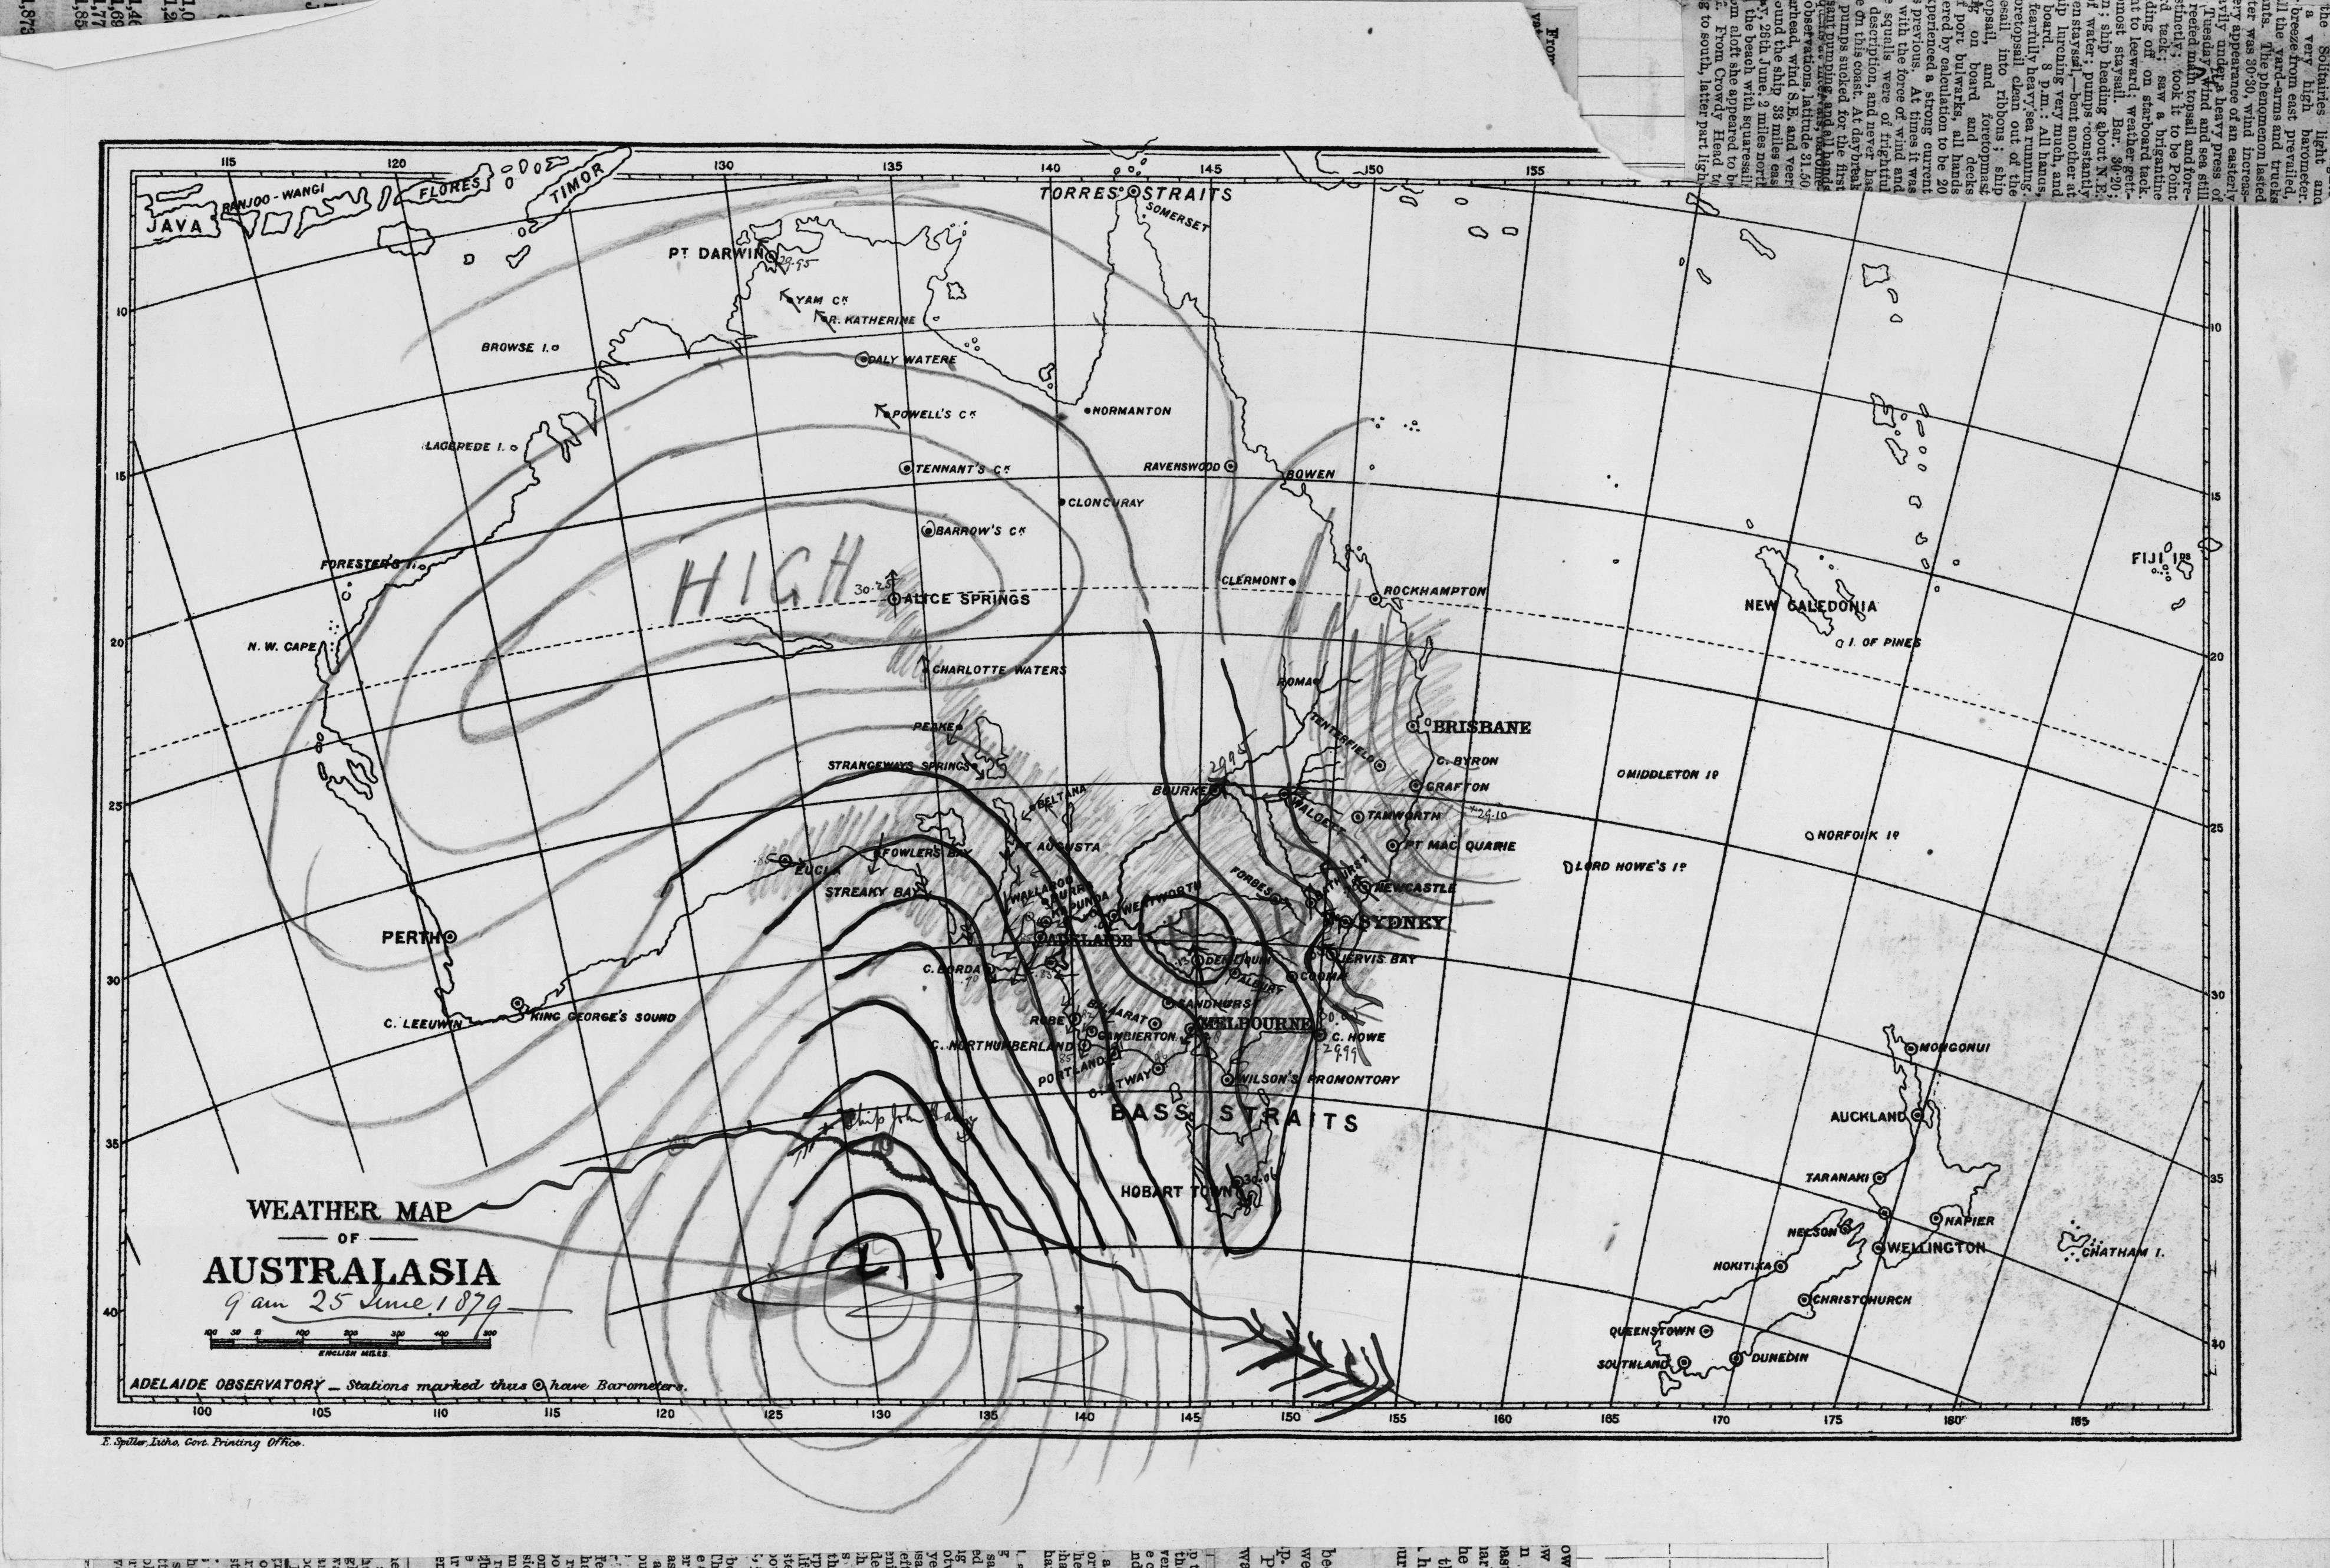 18790625c Weather map